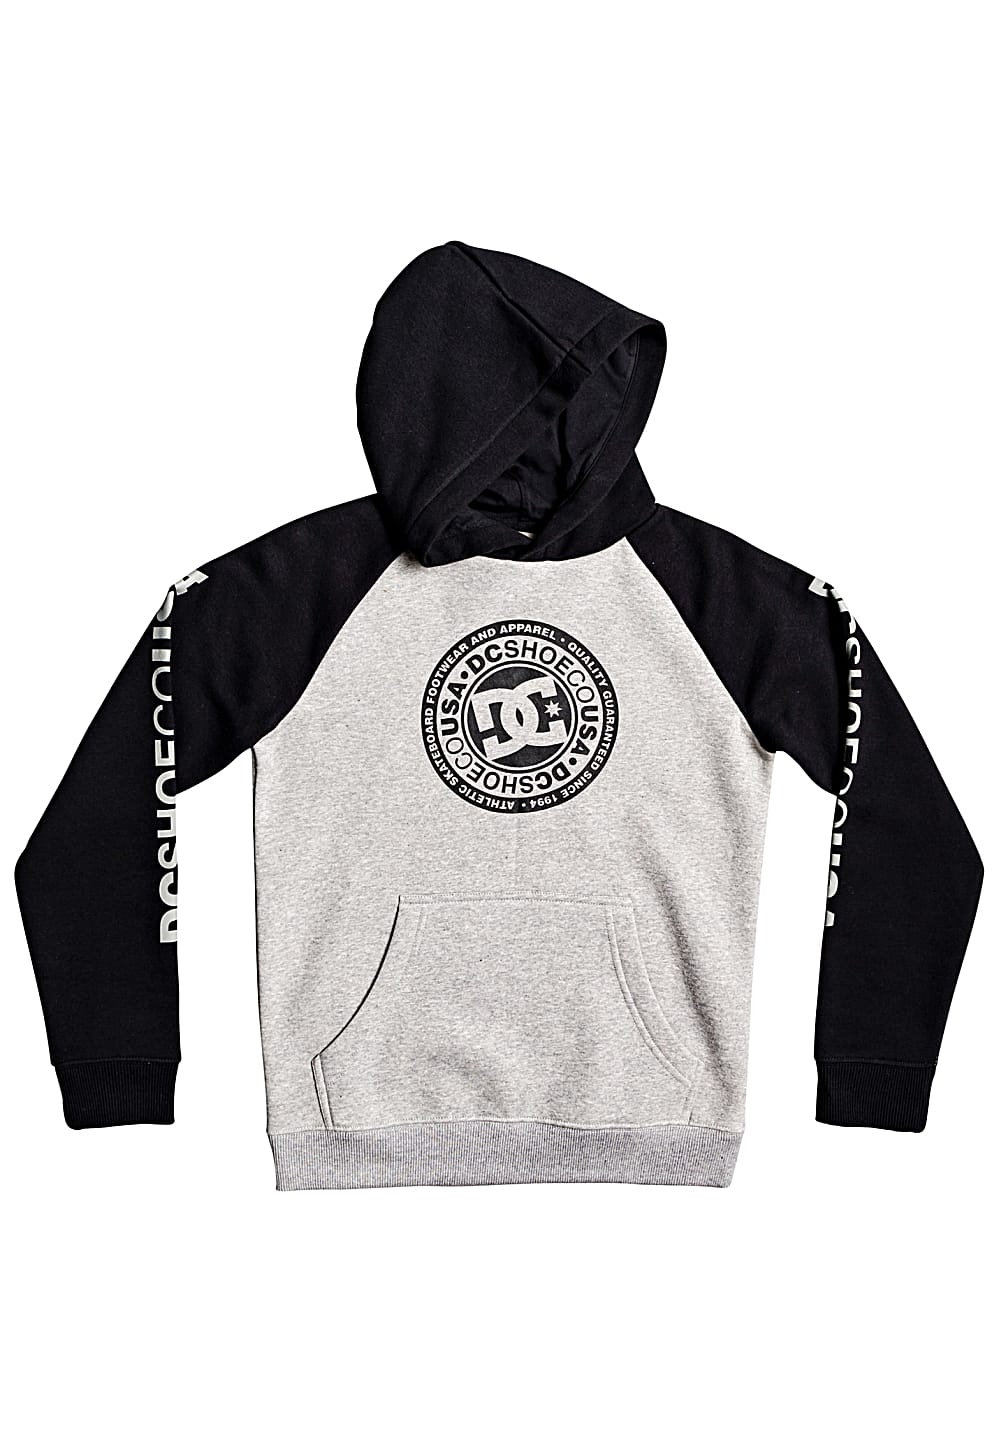 Boysoberteile - DC Circle Star Kapuzenpullover für Jungs Grau - Onlineshop Planet Sports